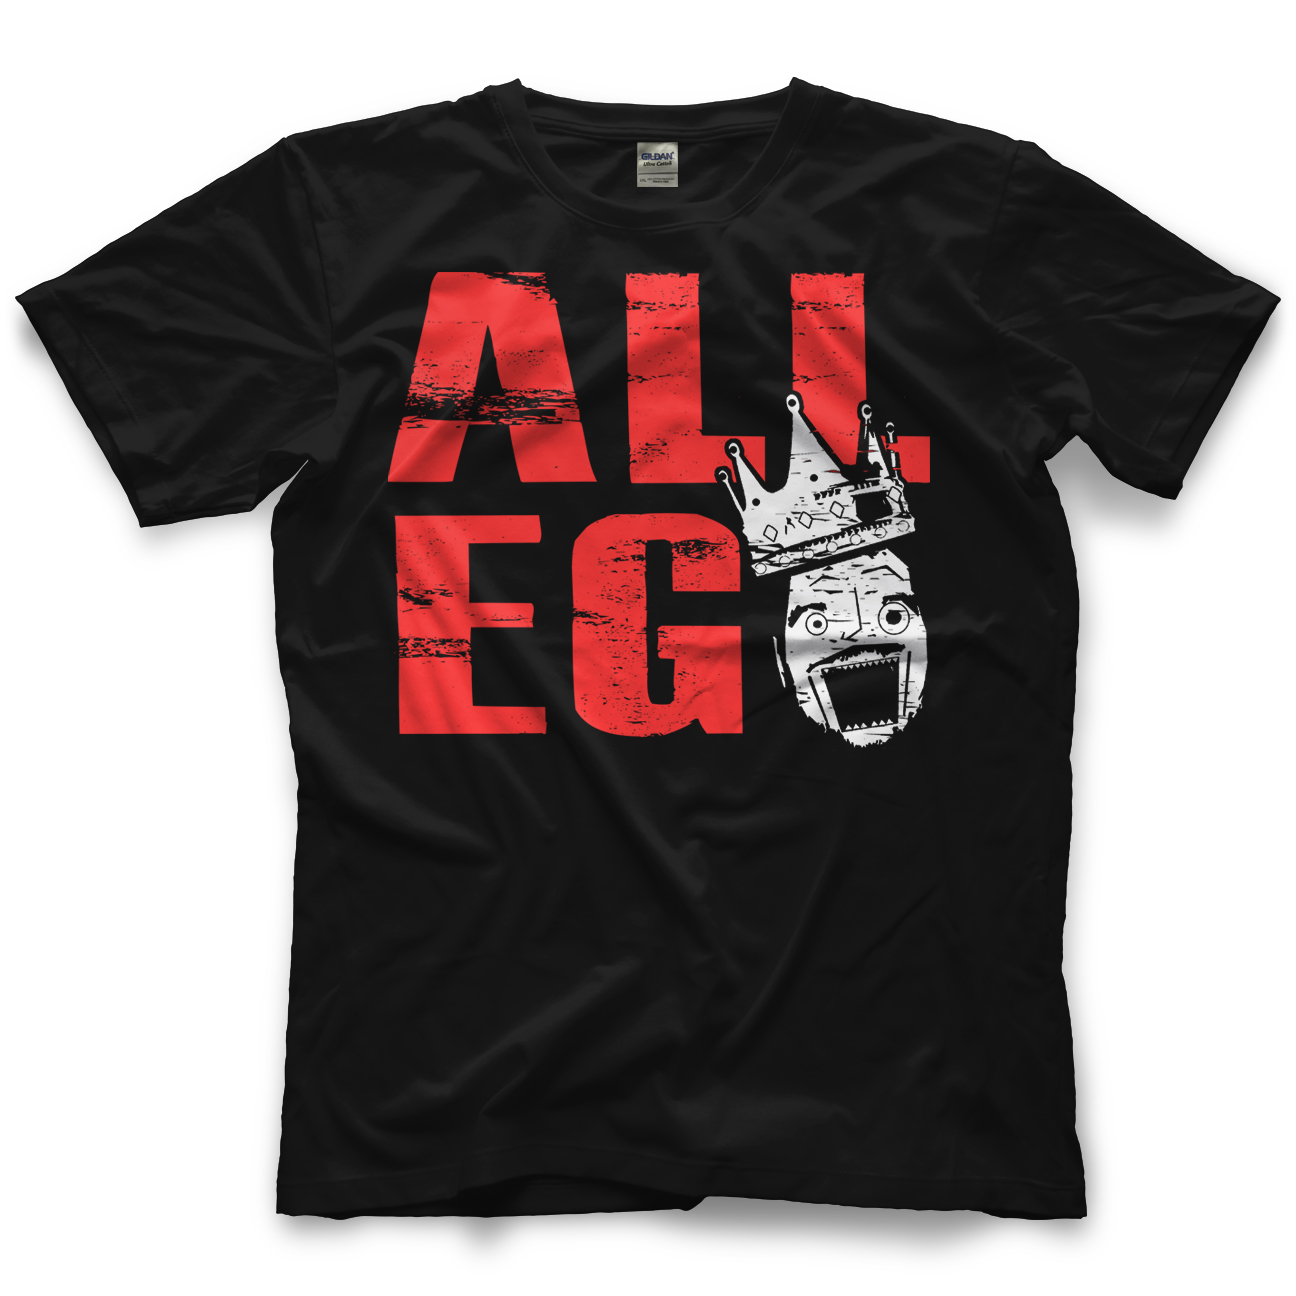 2016 Screaming Ego T-shirt